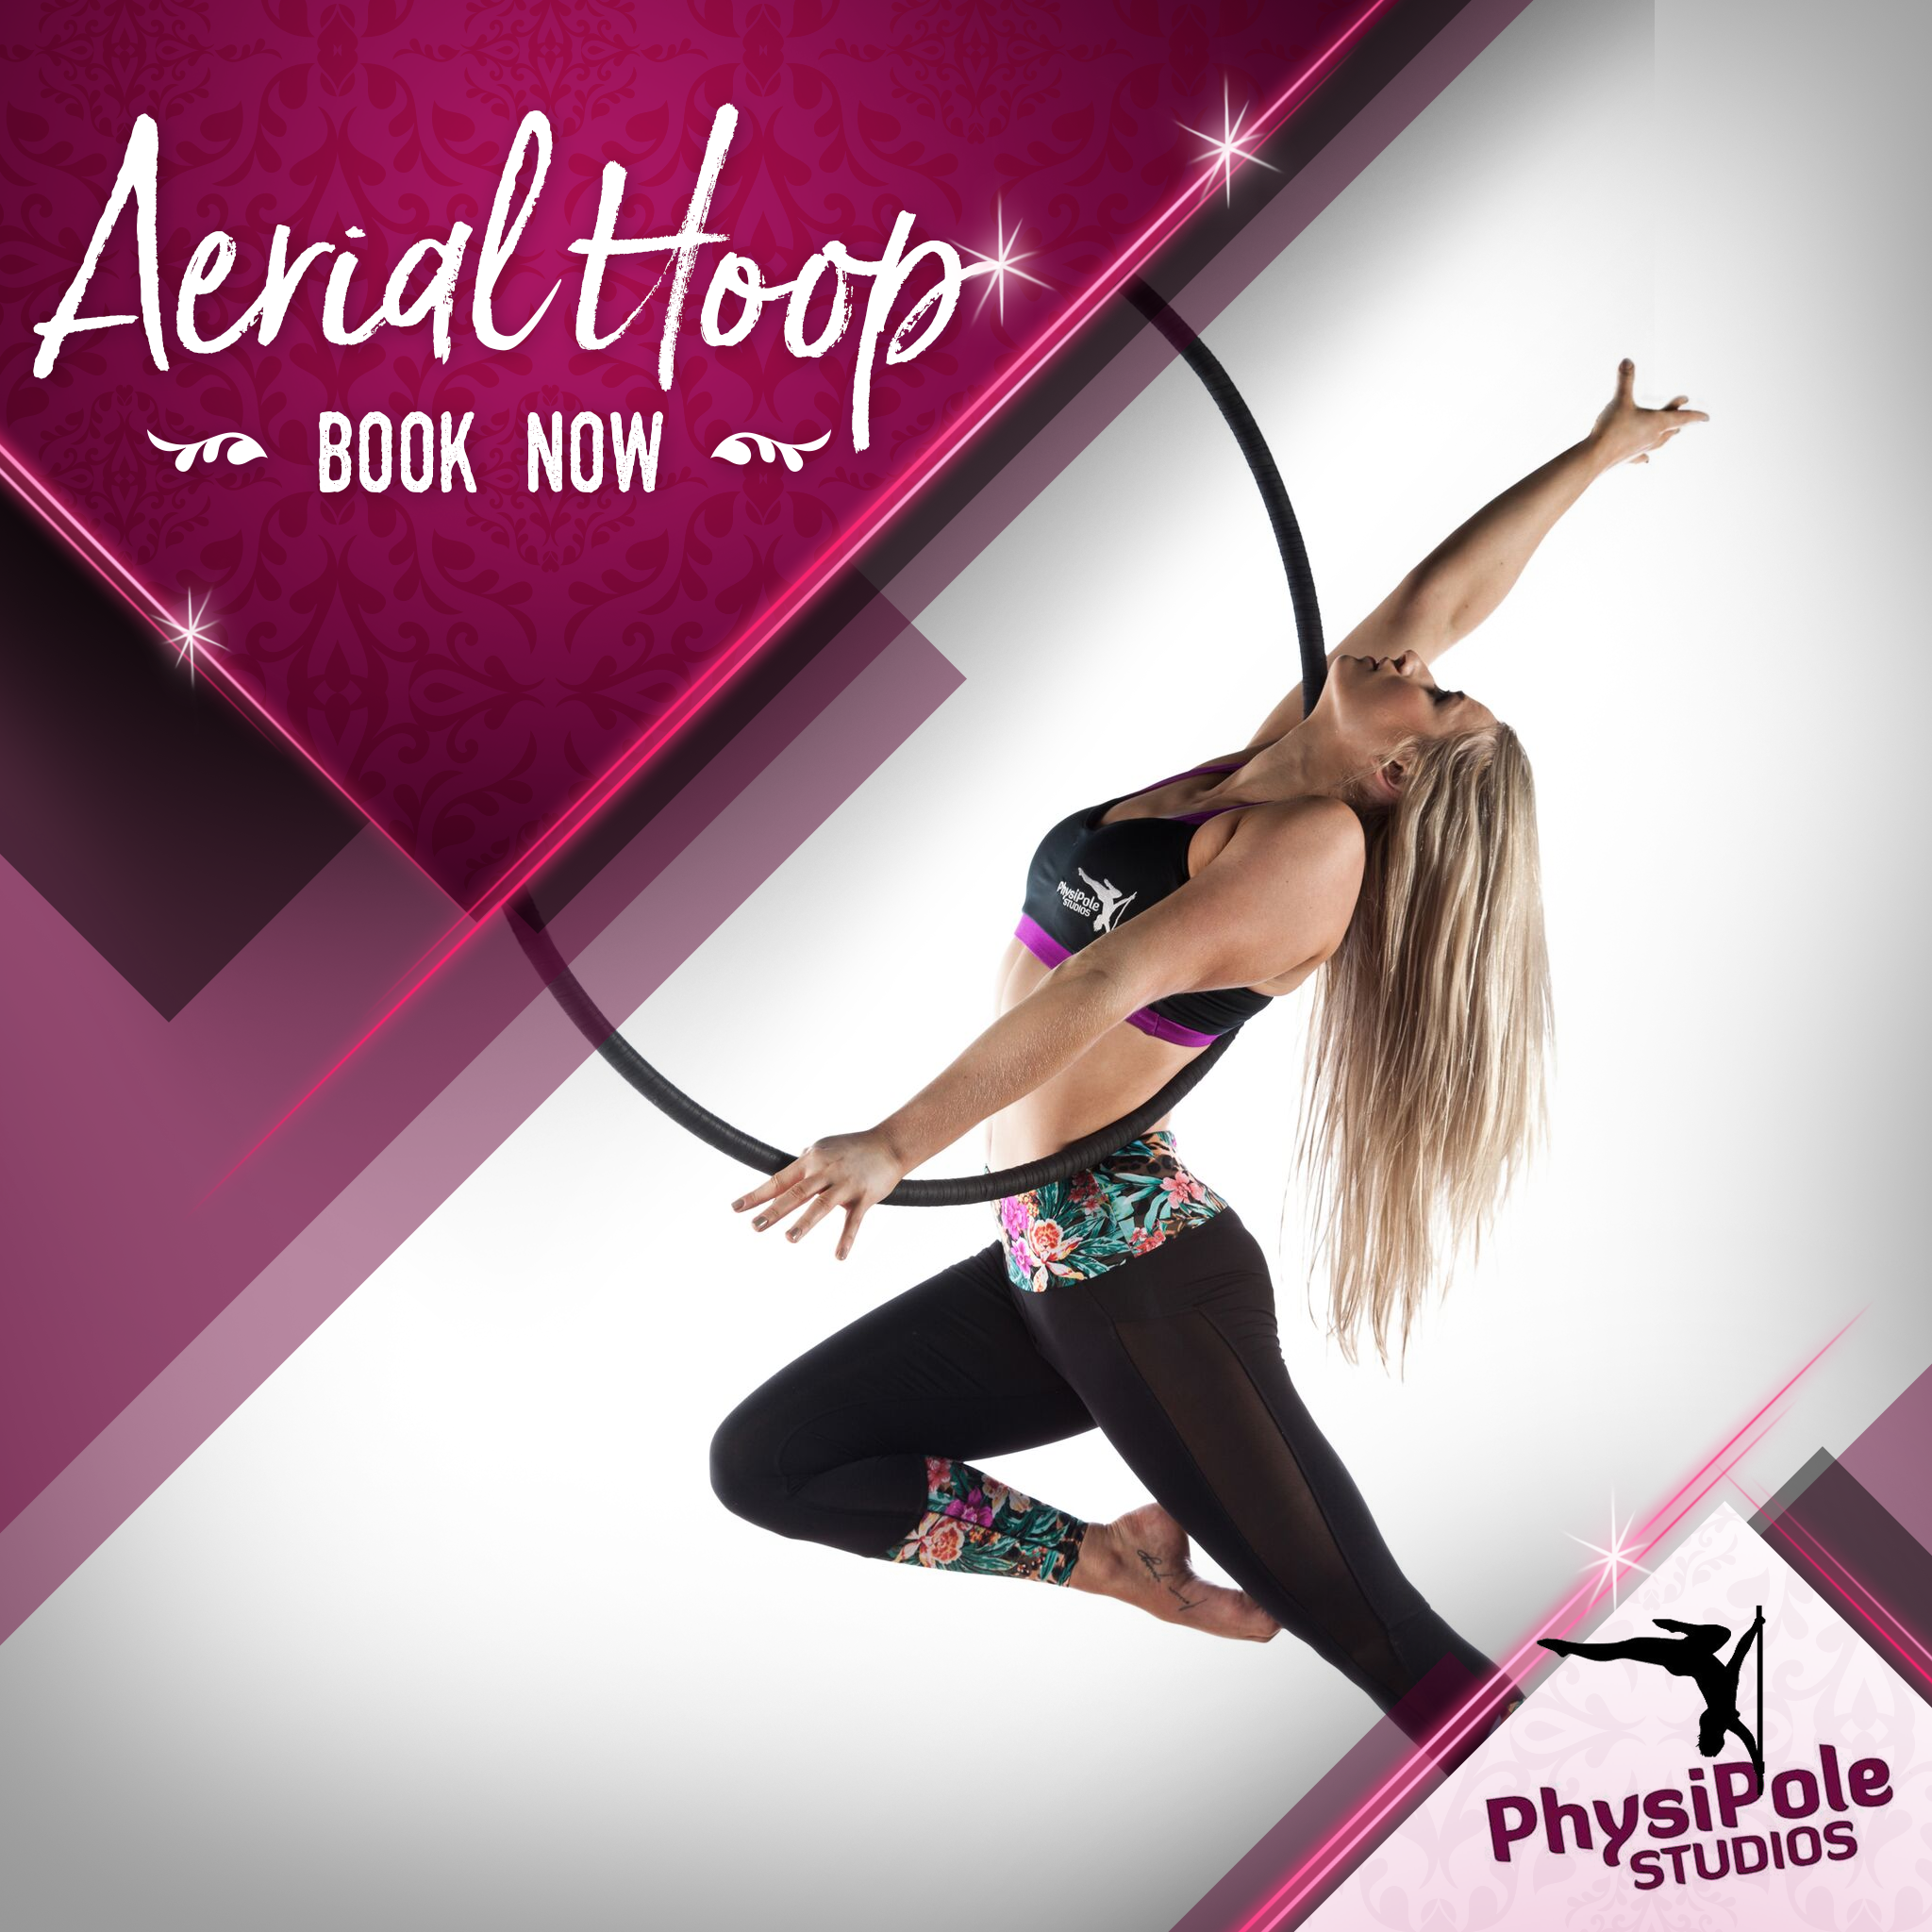 Have You Ever Wanted To Try Aerial Hoop It S A Great Way To Meet